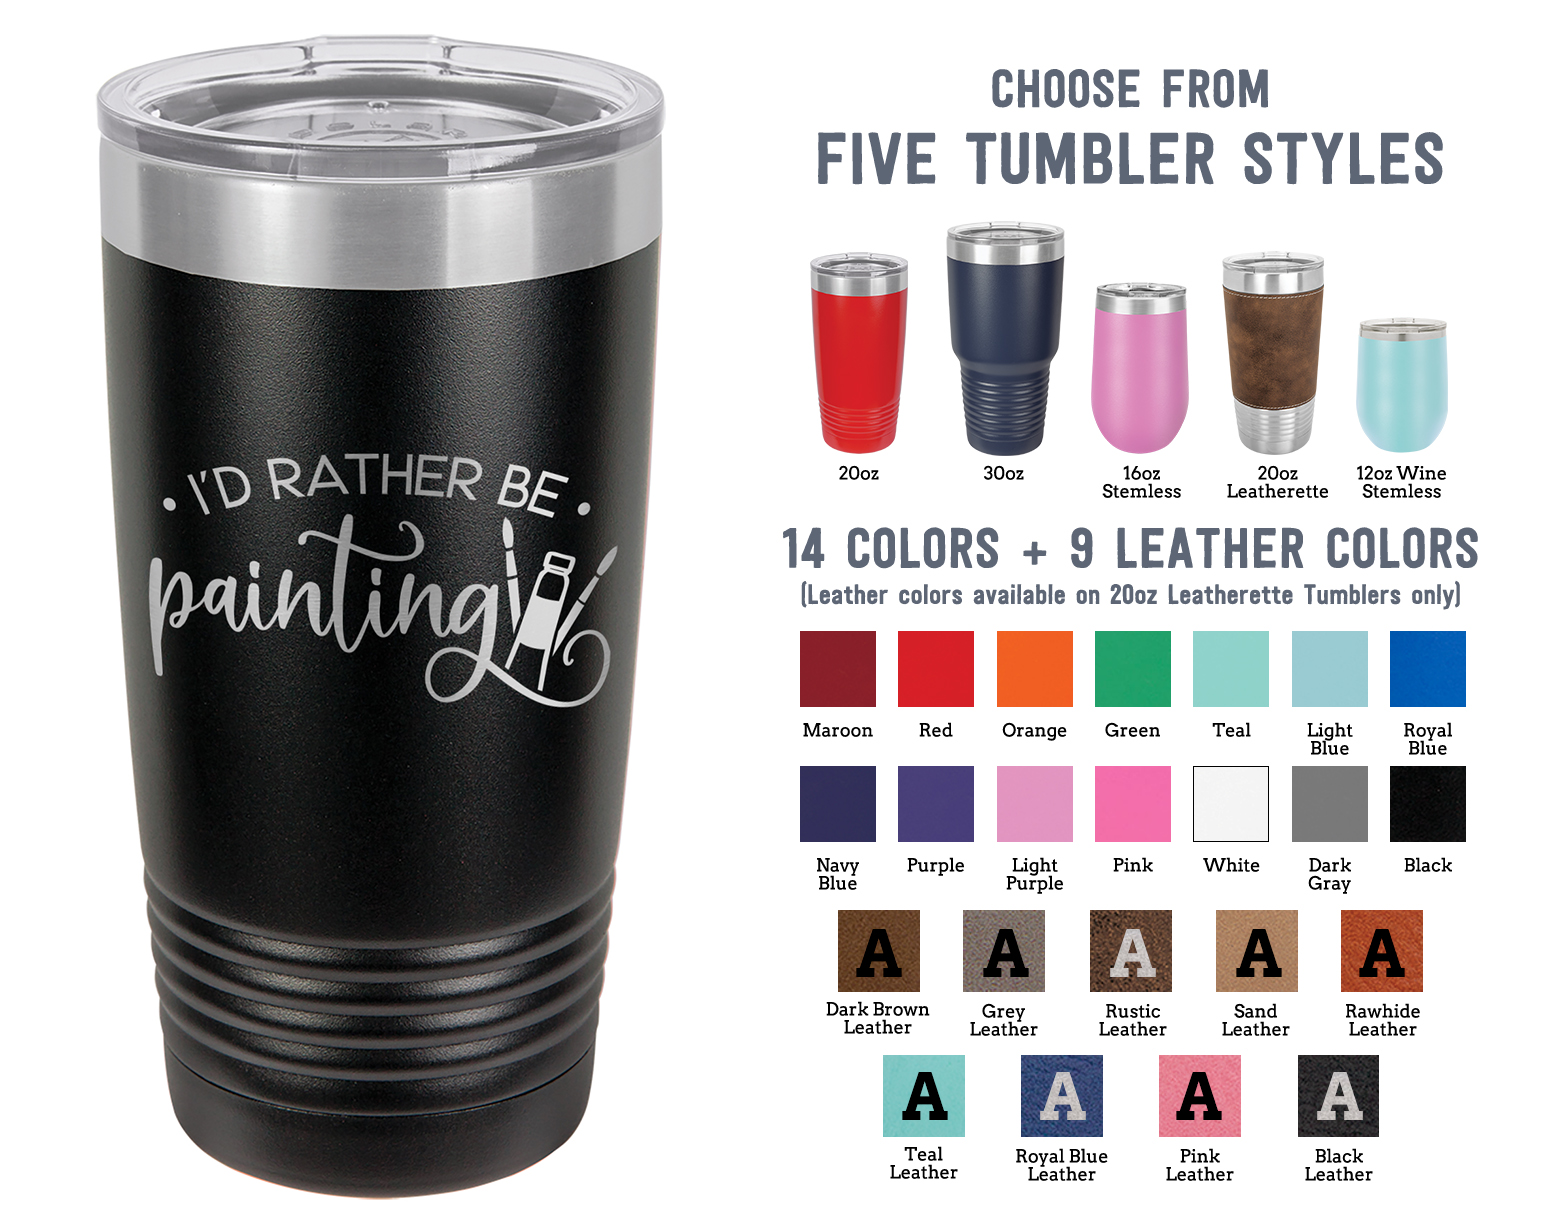 Laser Engraved Tumbler | I'd Rather Be Painting | Perfect Gift for Artists | Stainless Steel Insulated Travel Mug Keep Drinks HOT & COLD | SELECT SIZE & COLOR